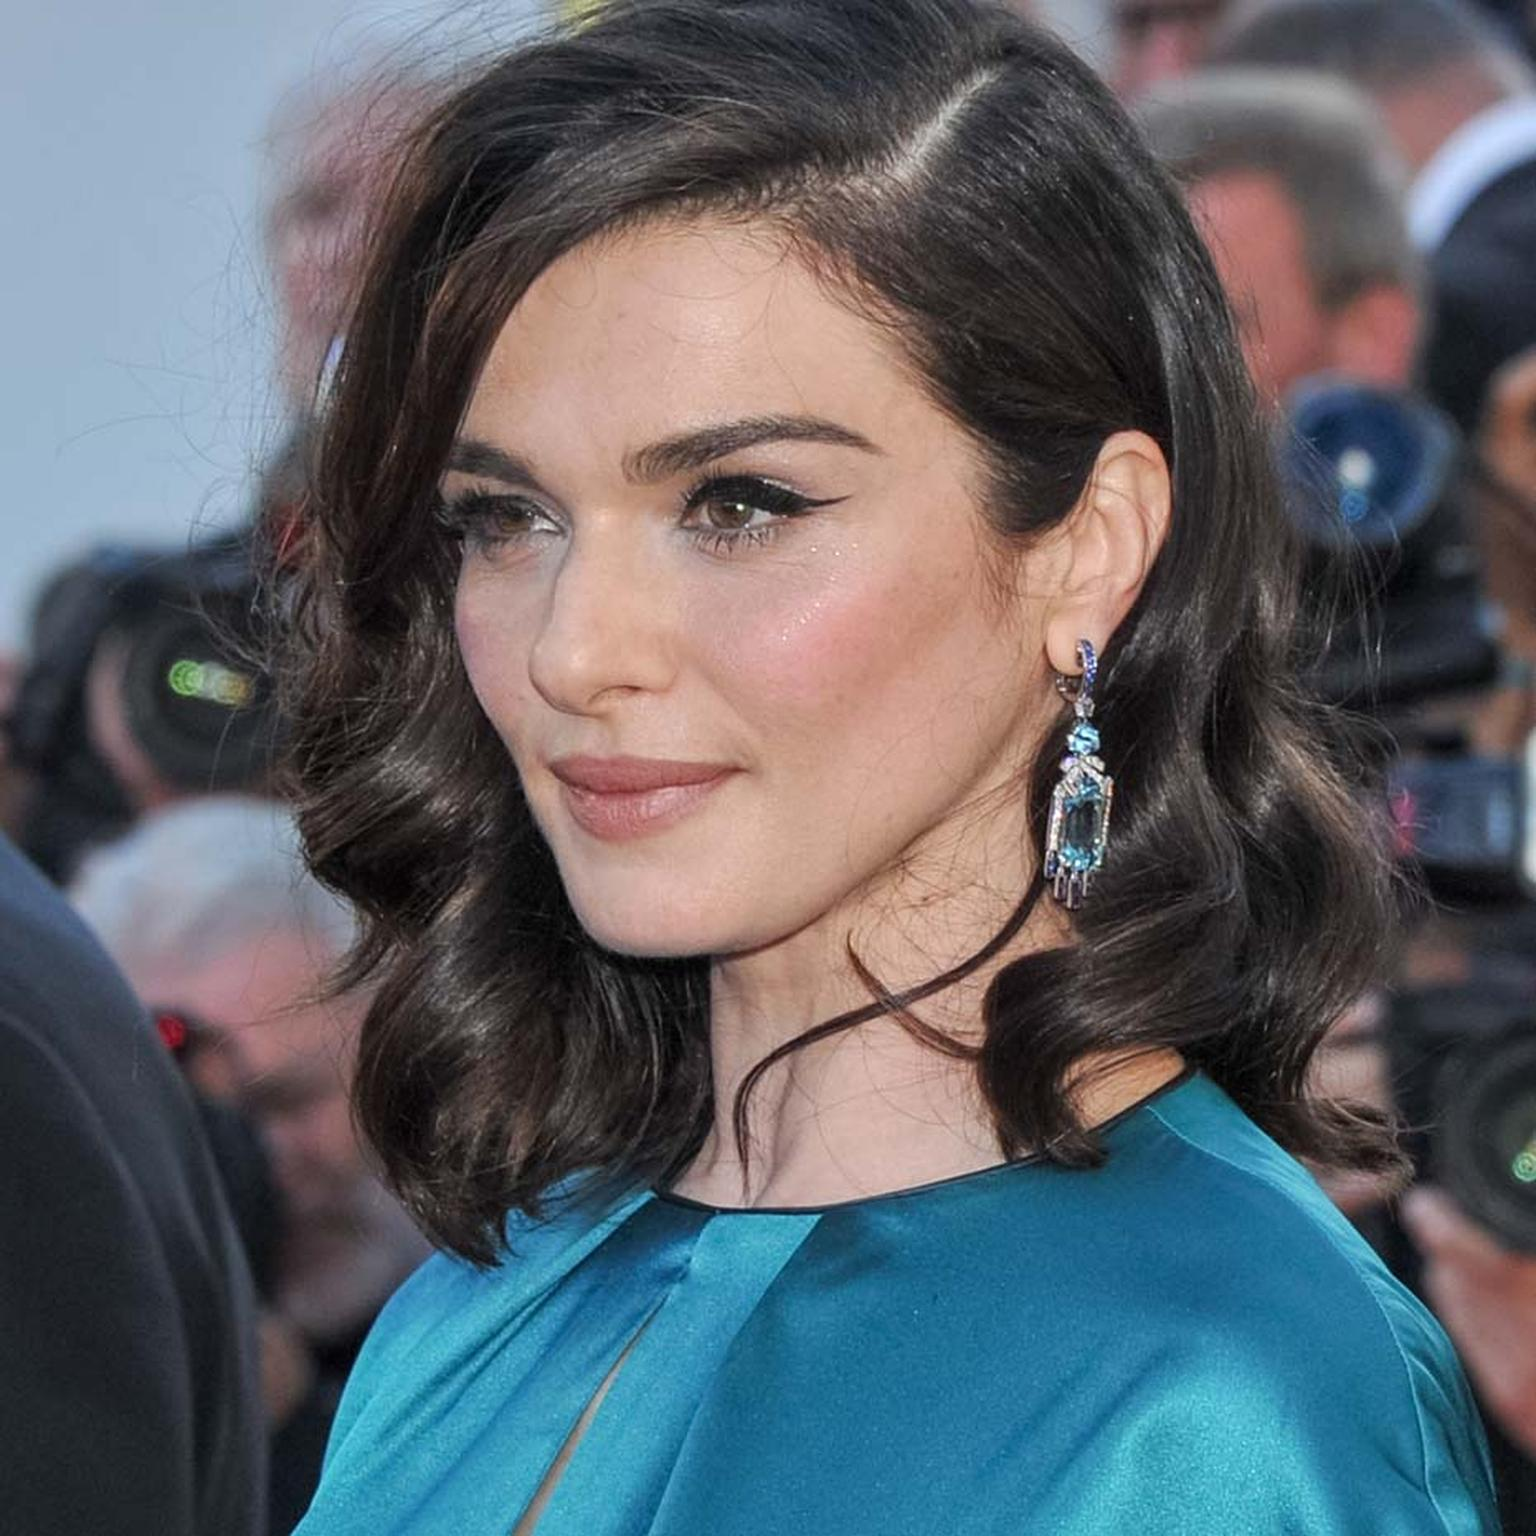 Rachel Weisz in Chaumet jewellery